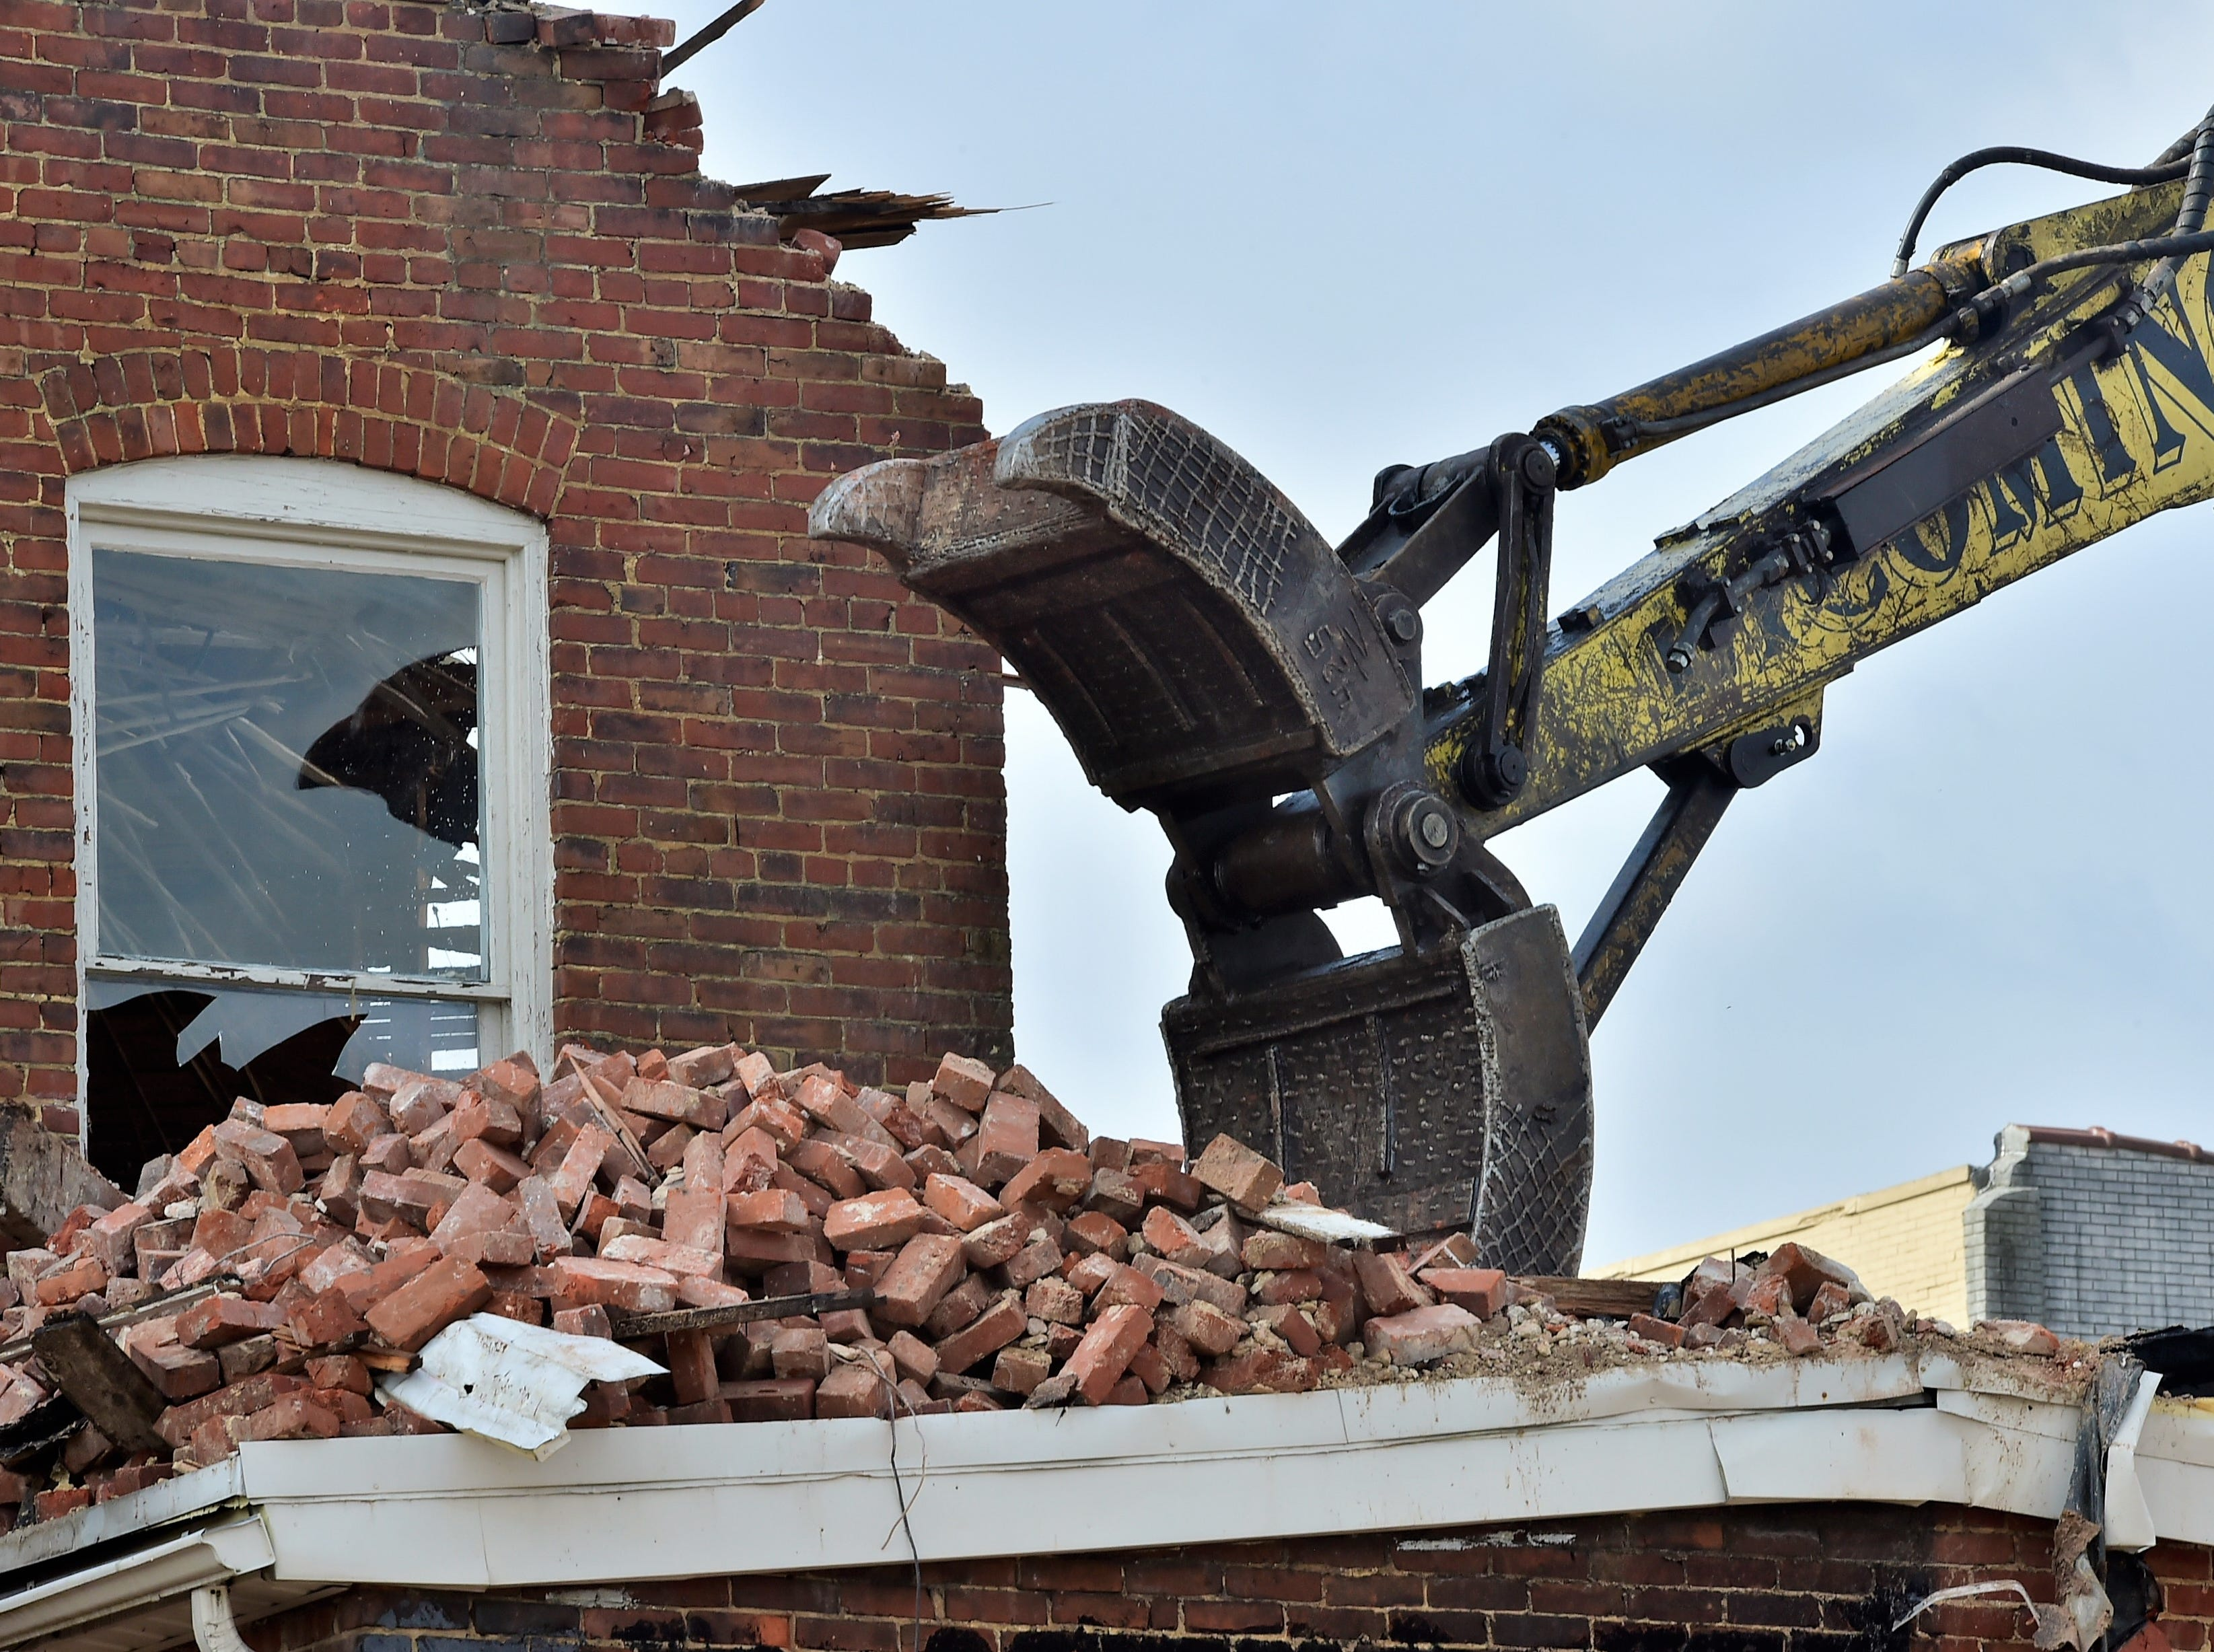 The old Wogan's Uniform building on North Main Street, Chambersburg, is demolished on Tuesday, April 9, 2019. Traffic will be limited to one lane through the end of the week as work continues. Lycoming Supply is tearing down structures in the first block of North Main Street as part of the $67.8 million Franklin County Court Facility Improvement Project. A judicial center will be built in the space.